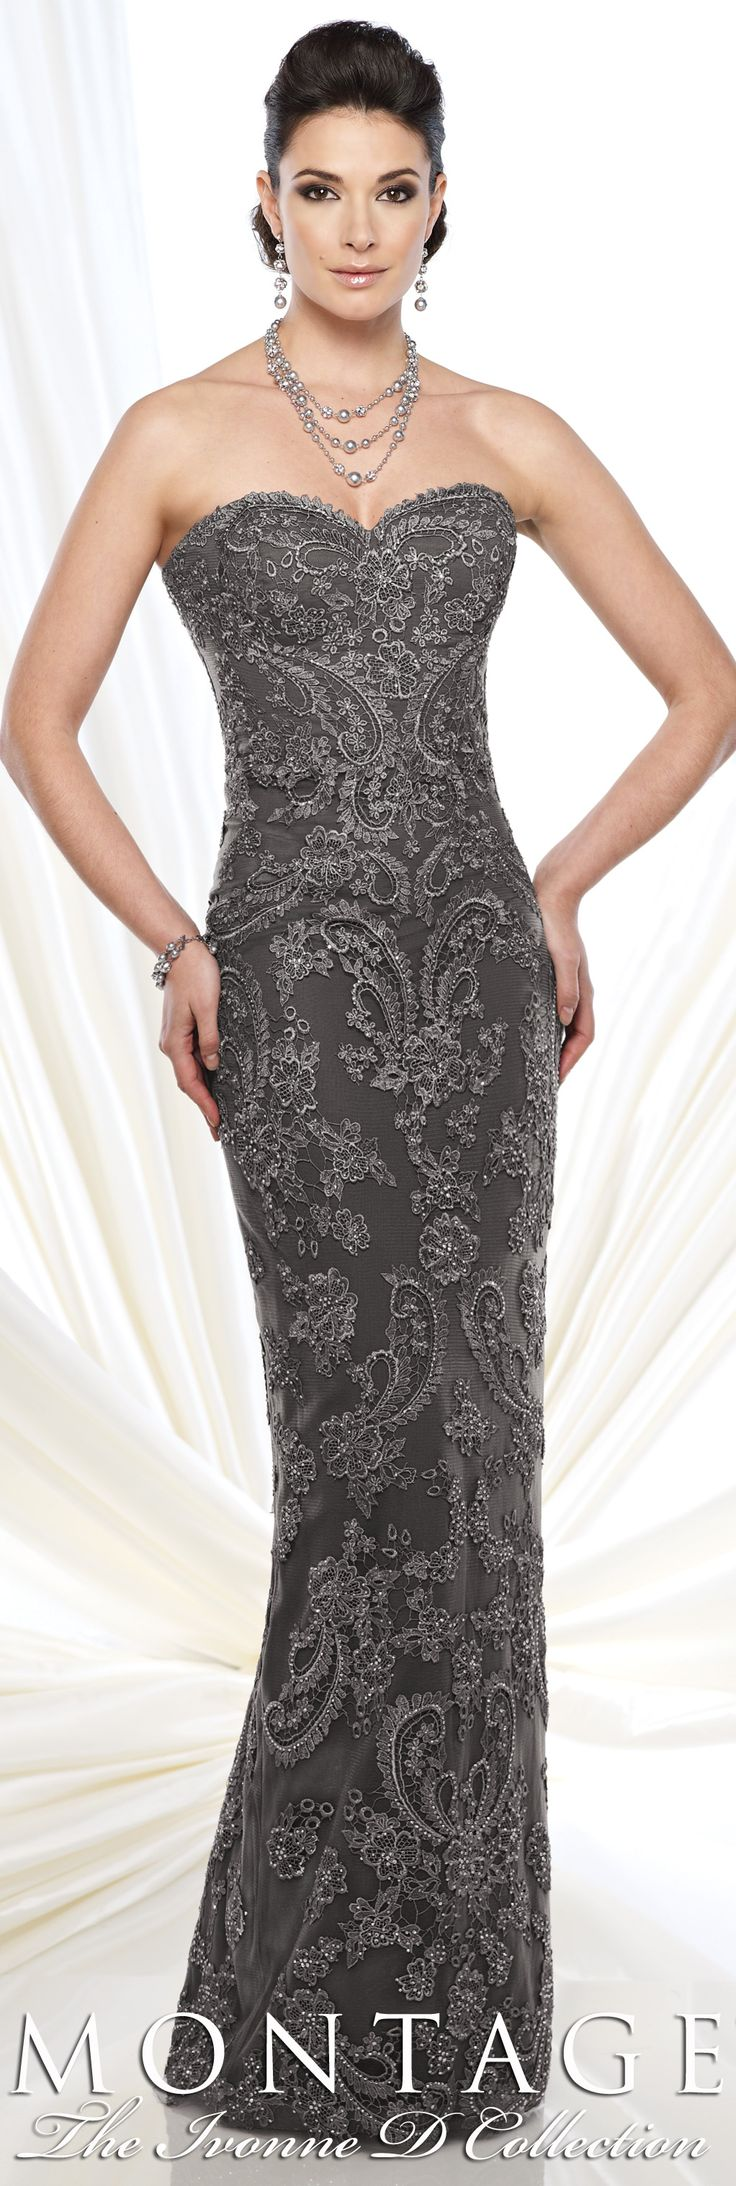 Mon Cheri Mother Of The Bride Dresses Fall 2018 Collection ...